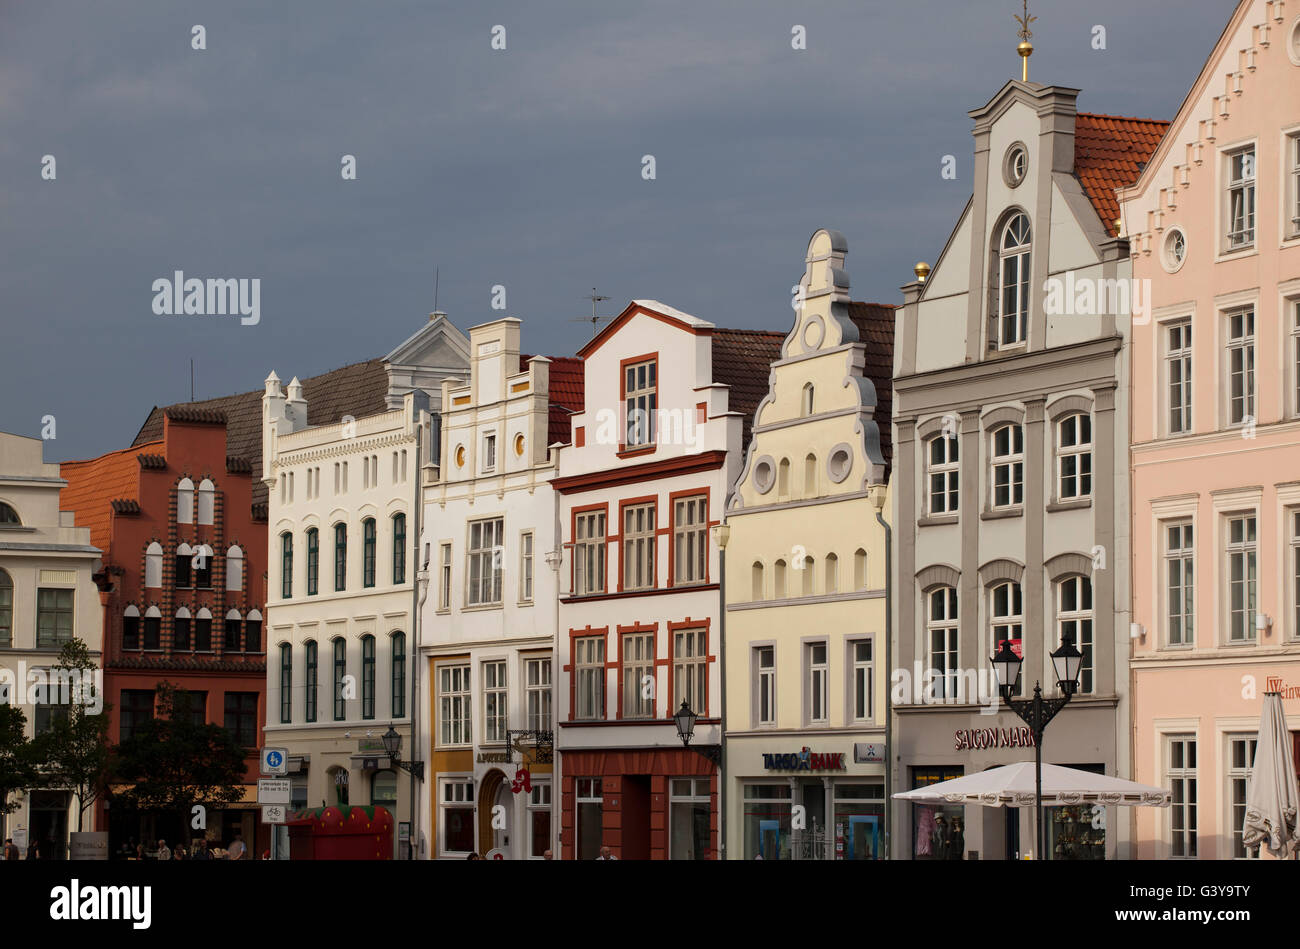 Row of houses in the market square, Wismar, Mecklenburg-Western Pomerania - Stock Image